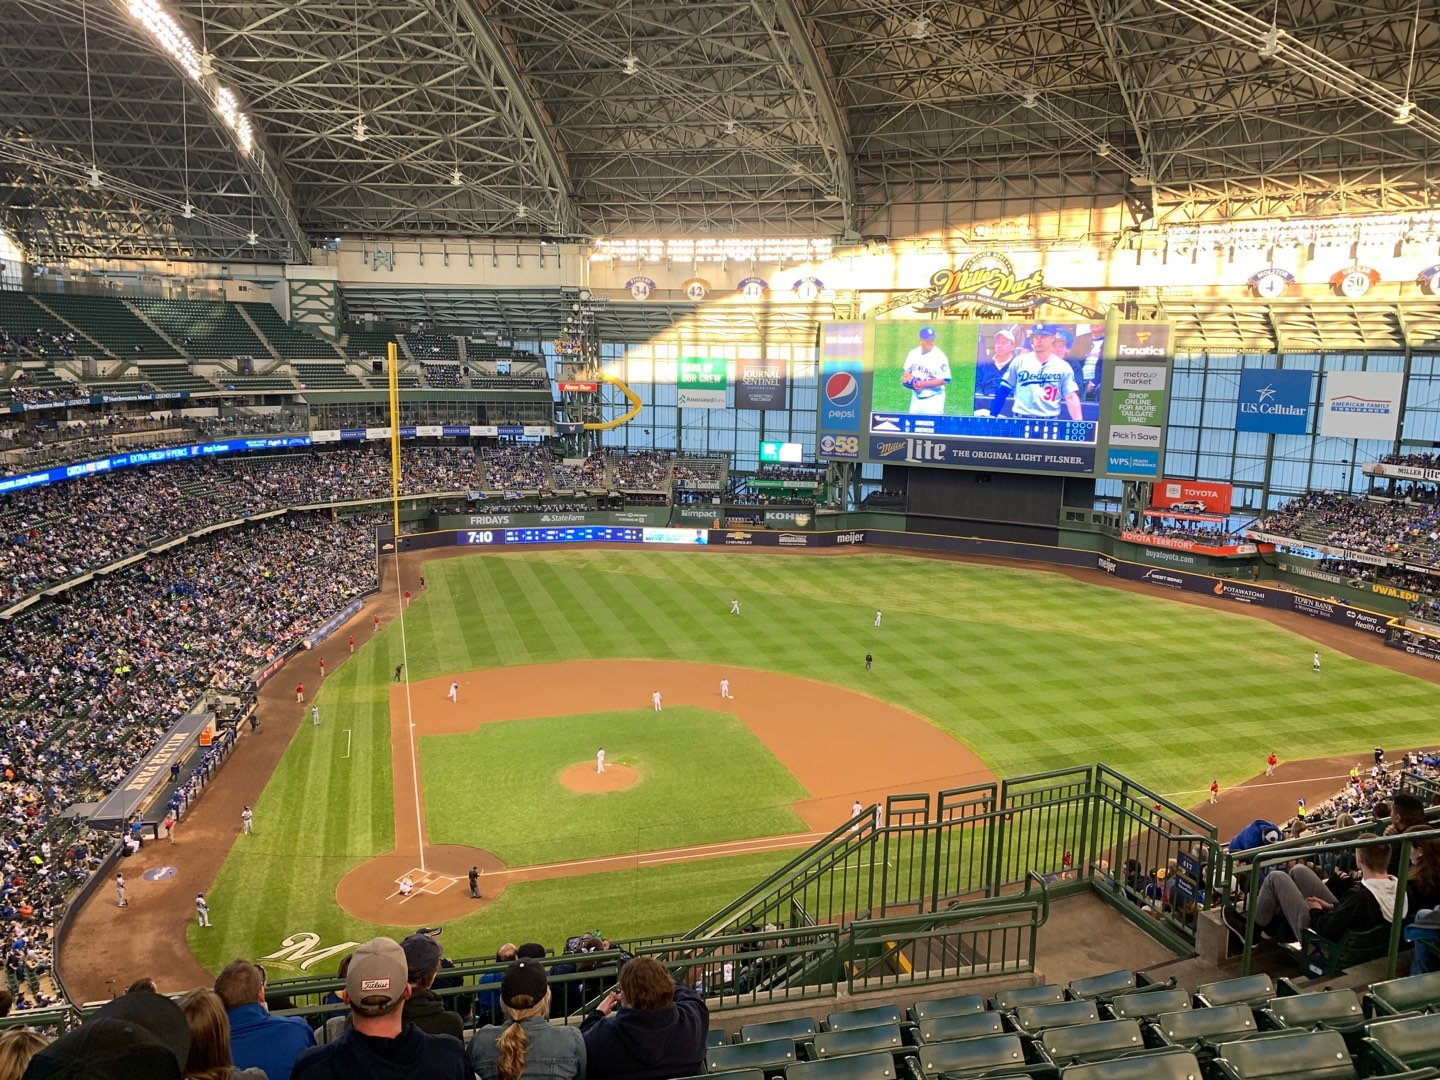 Miller Park Section 418 Row 14 Seat 15